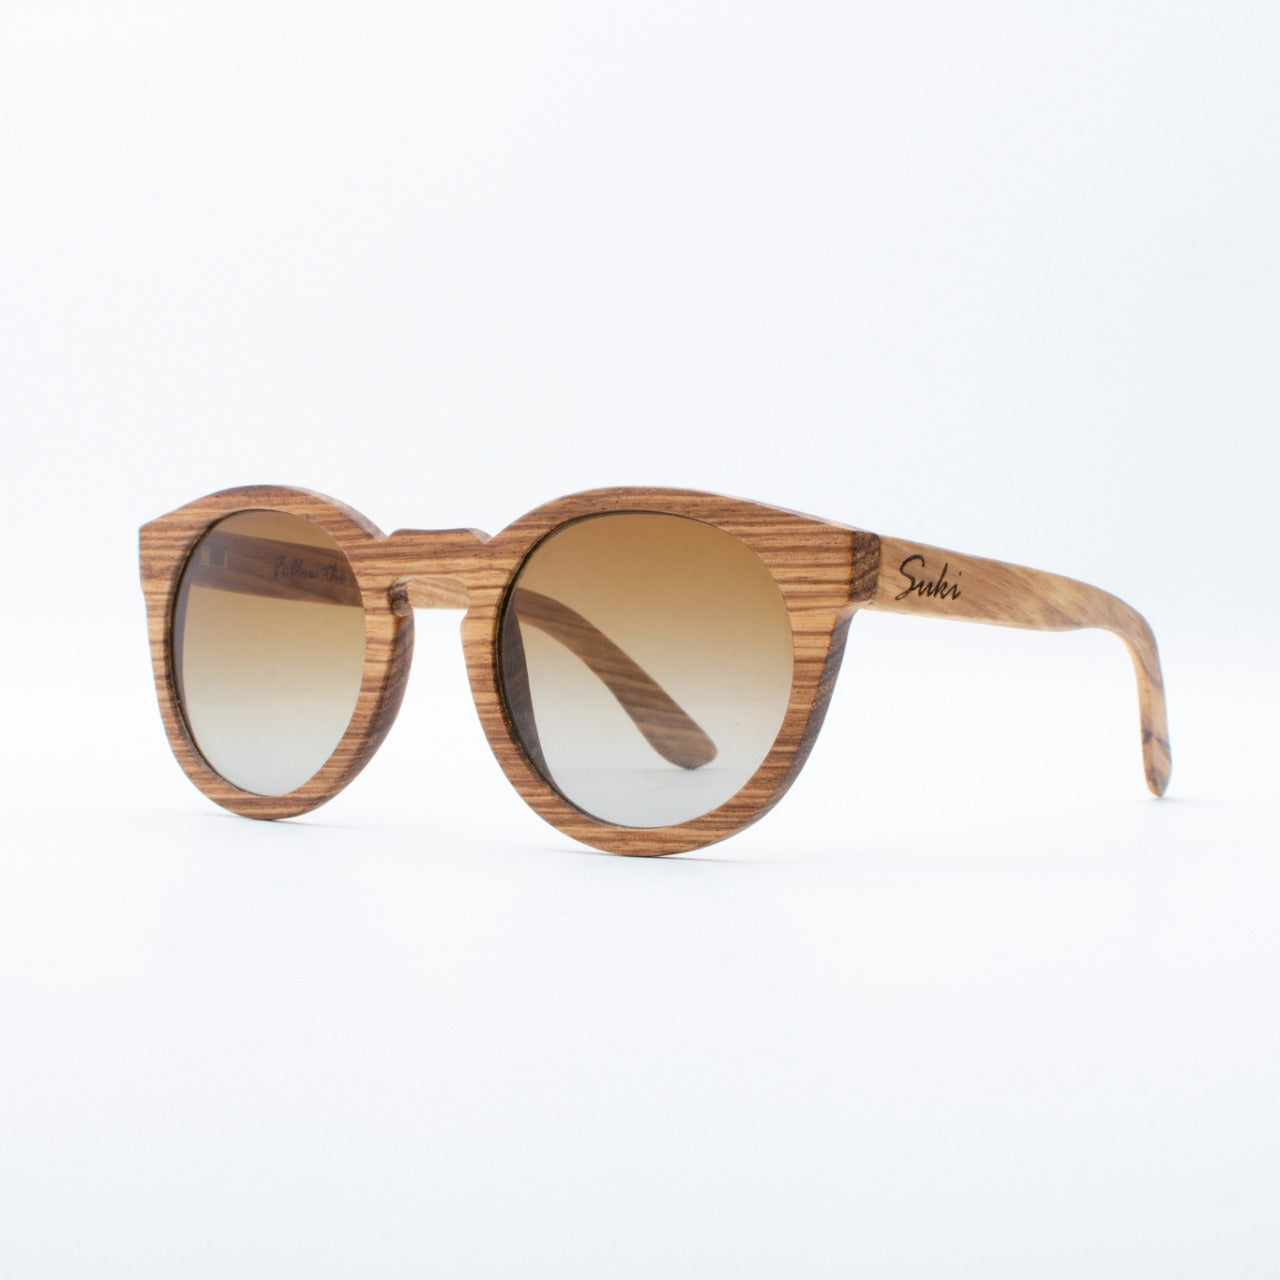 WOODEN SUNGLASSES GILI ZEBRAWOOD SUKI LEFT